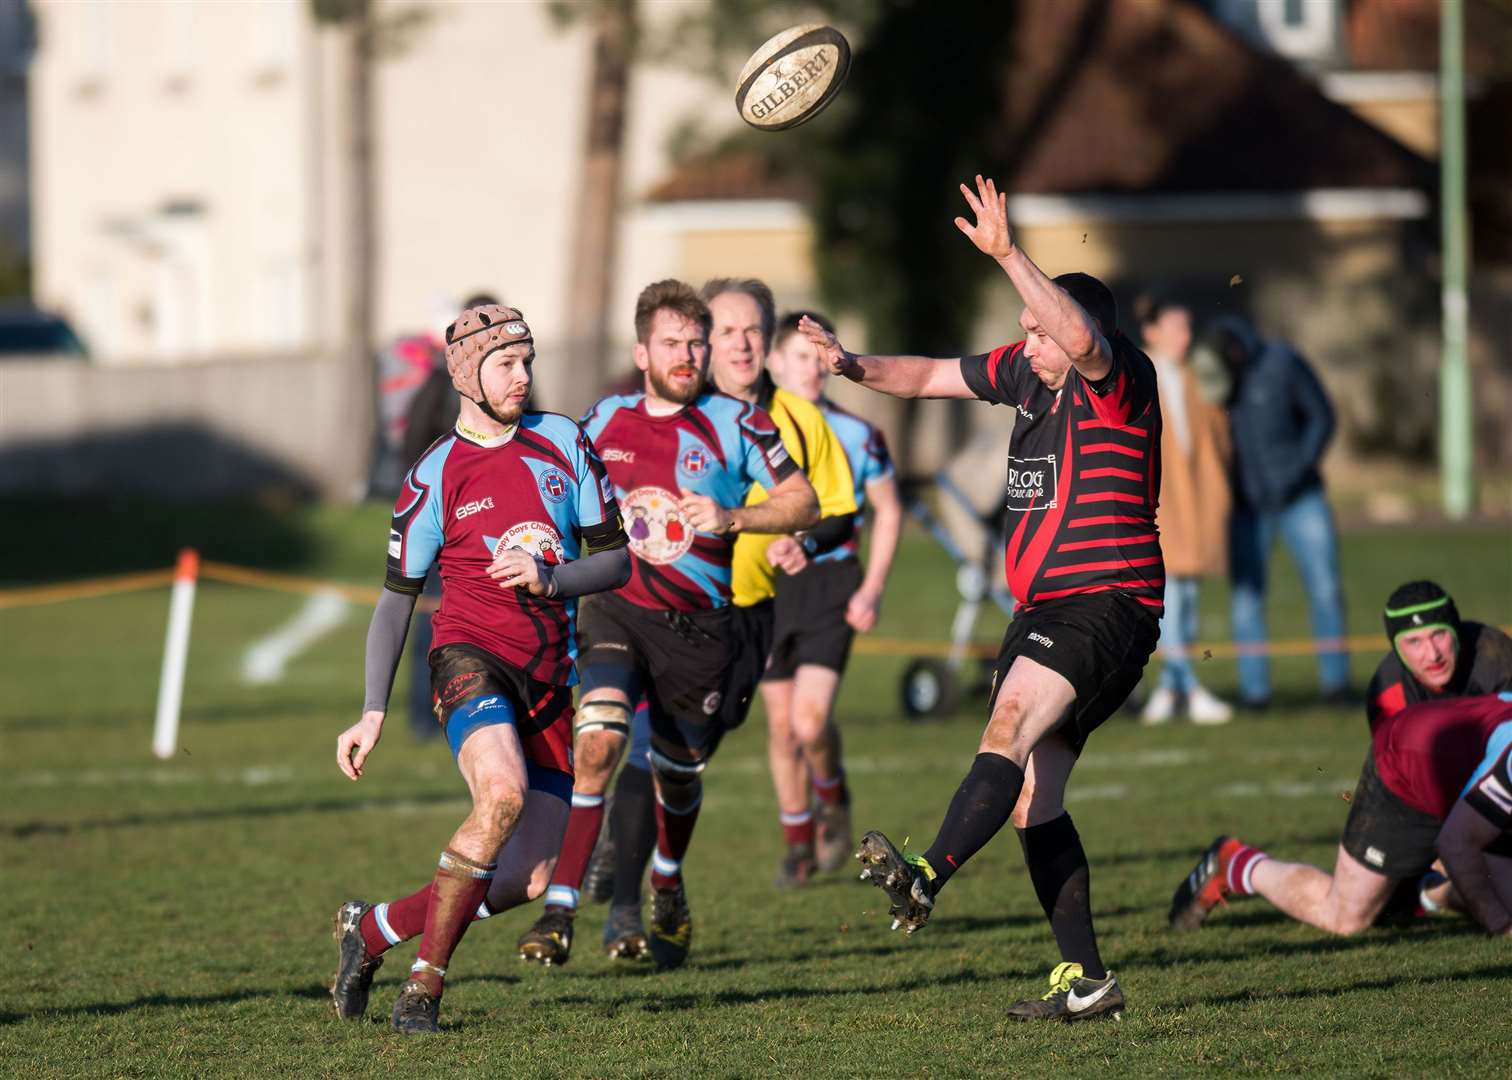 RUGBY: Mildenhall & Red Lodge v Haverhill Picture Mark Westley. (33214624)